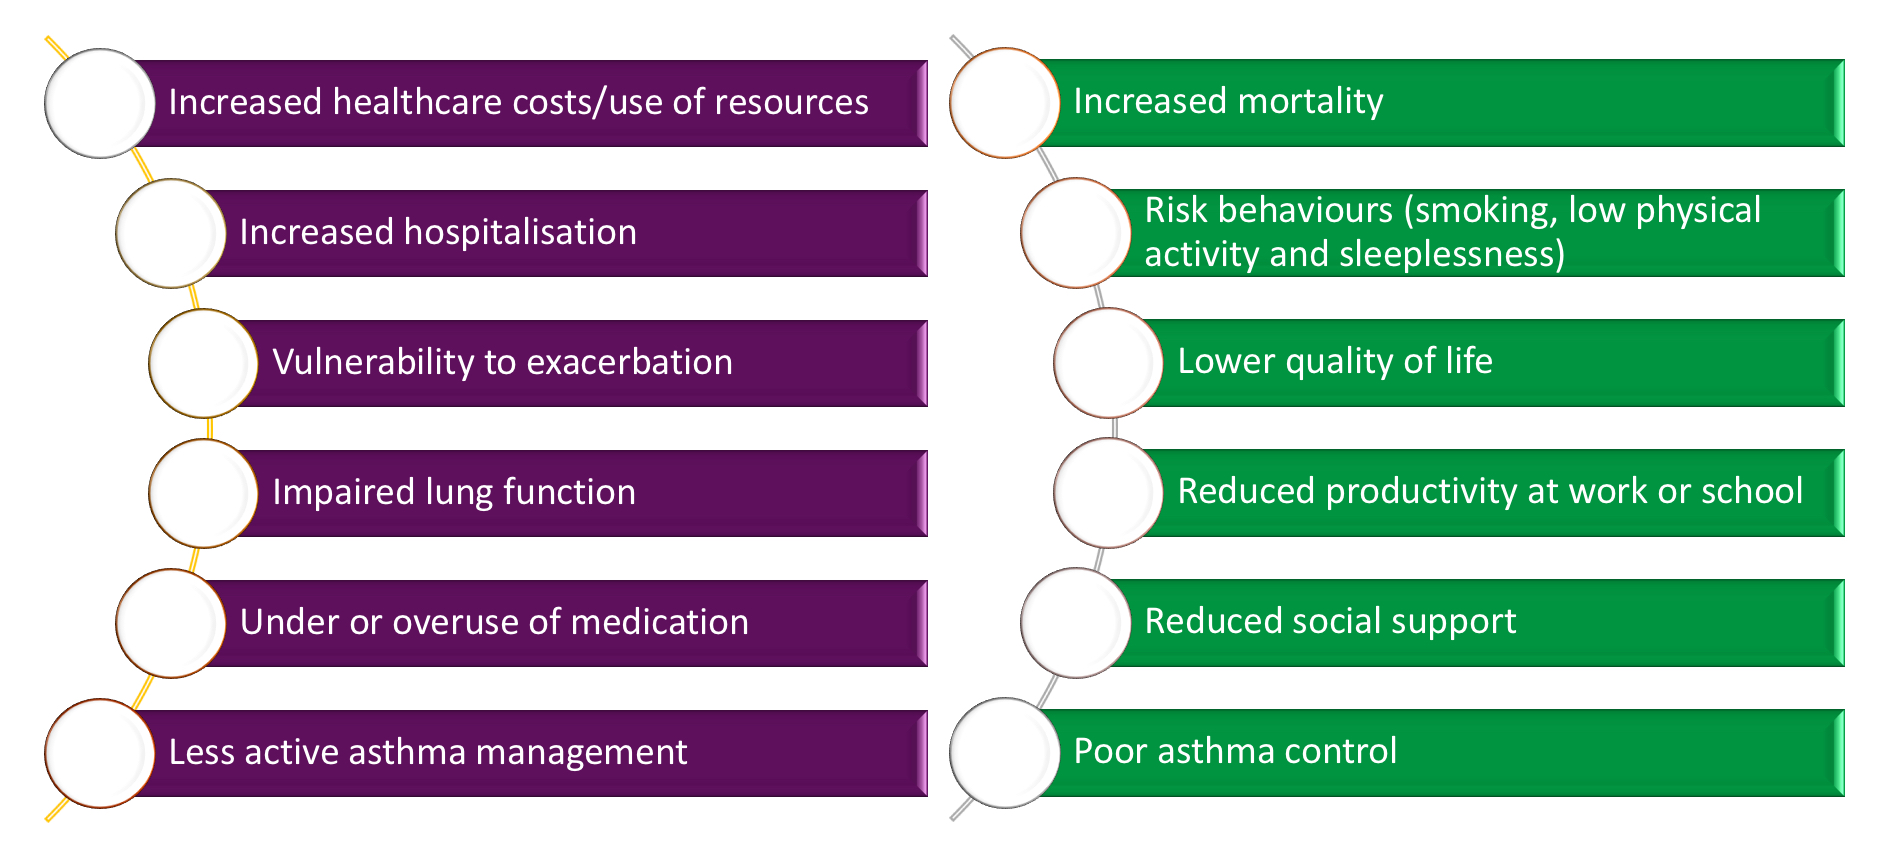 impact of anxiety and depression for people with asthma